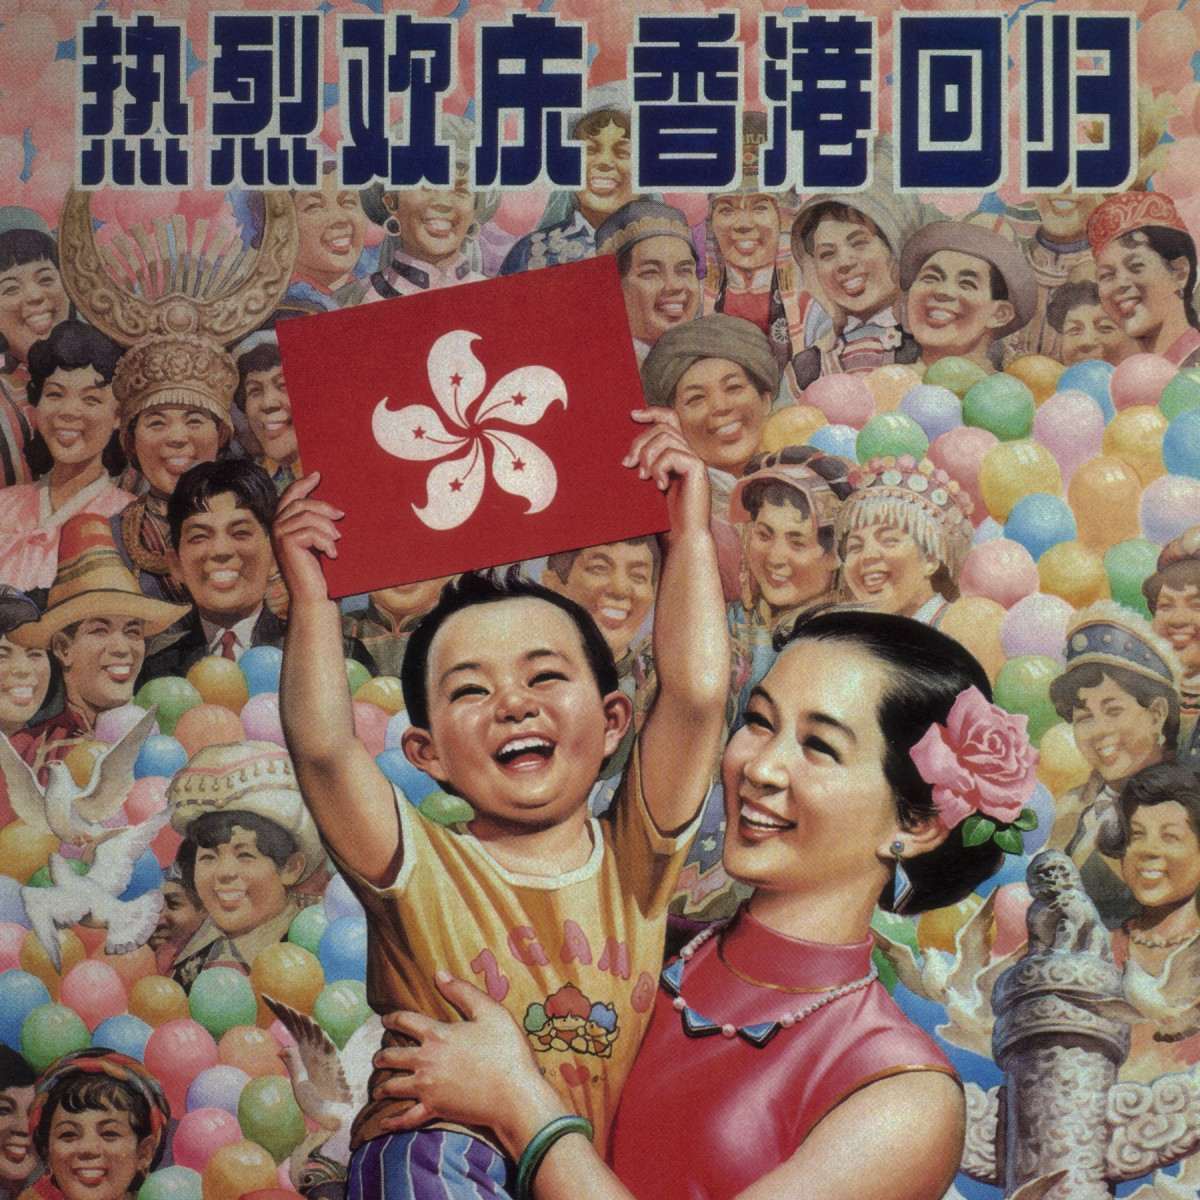 A Chinese propaganda poster showing an enthusiastic celebration after the return of Hong Kong to China in 1997.